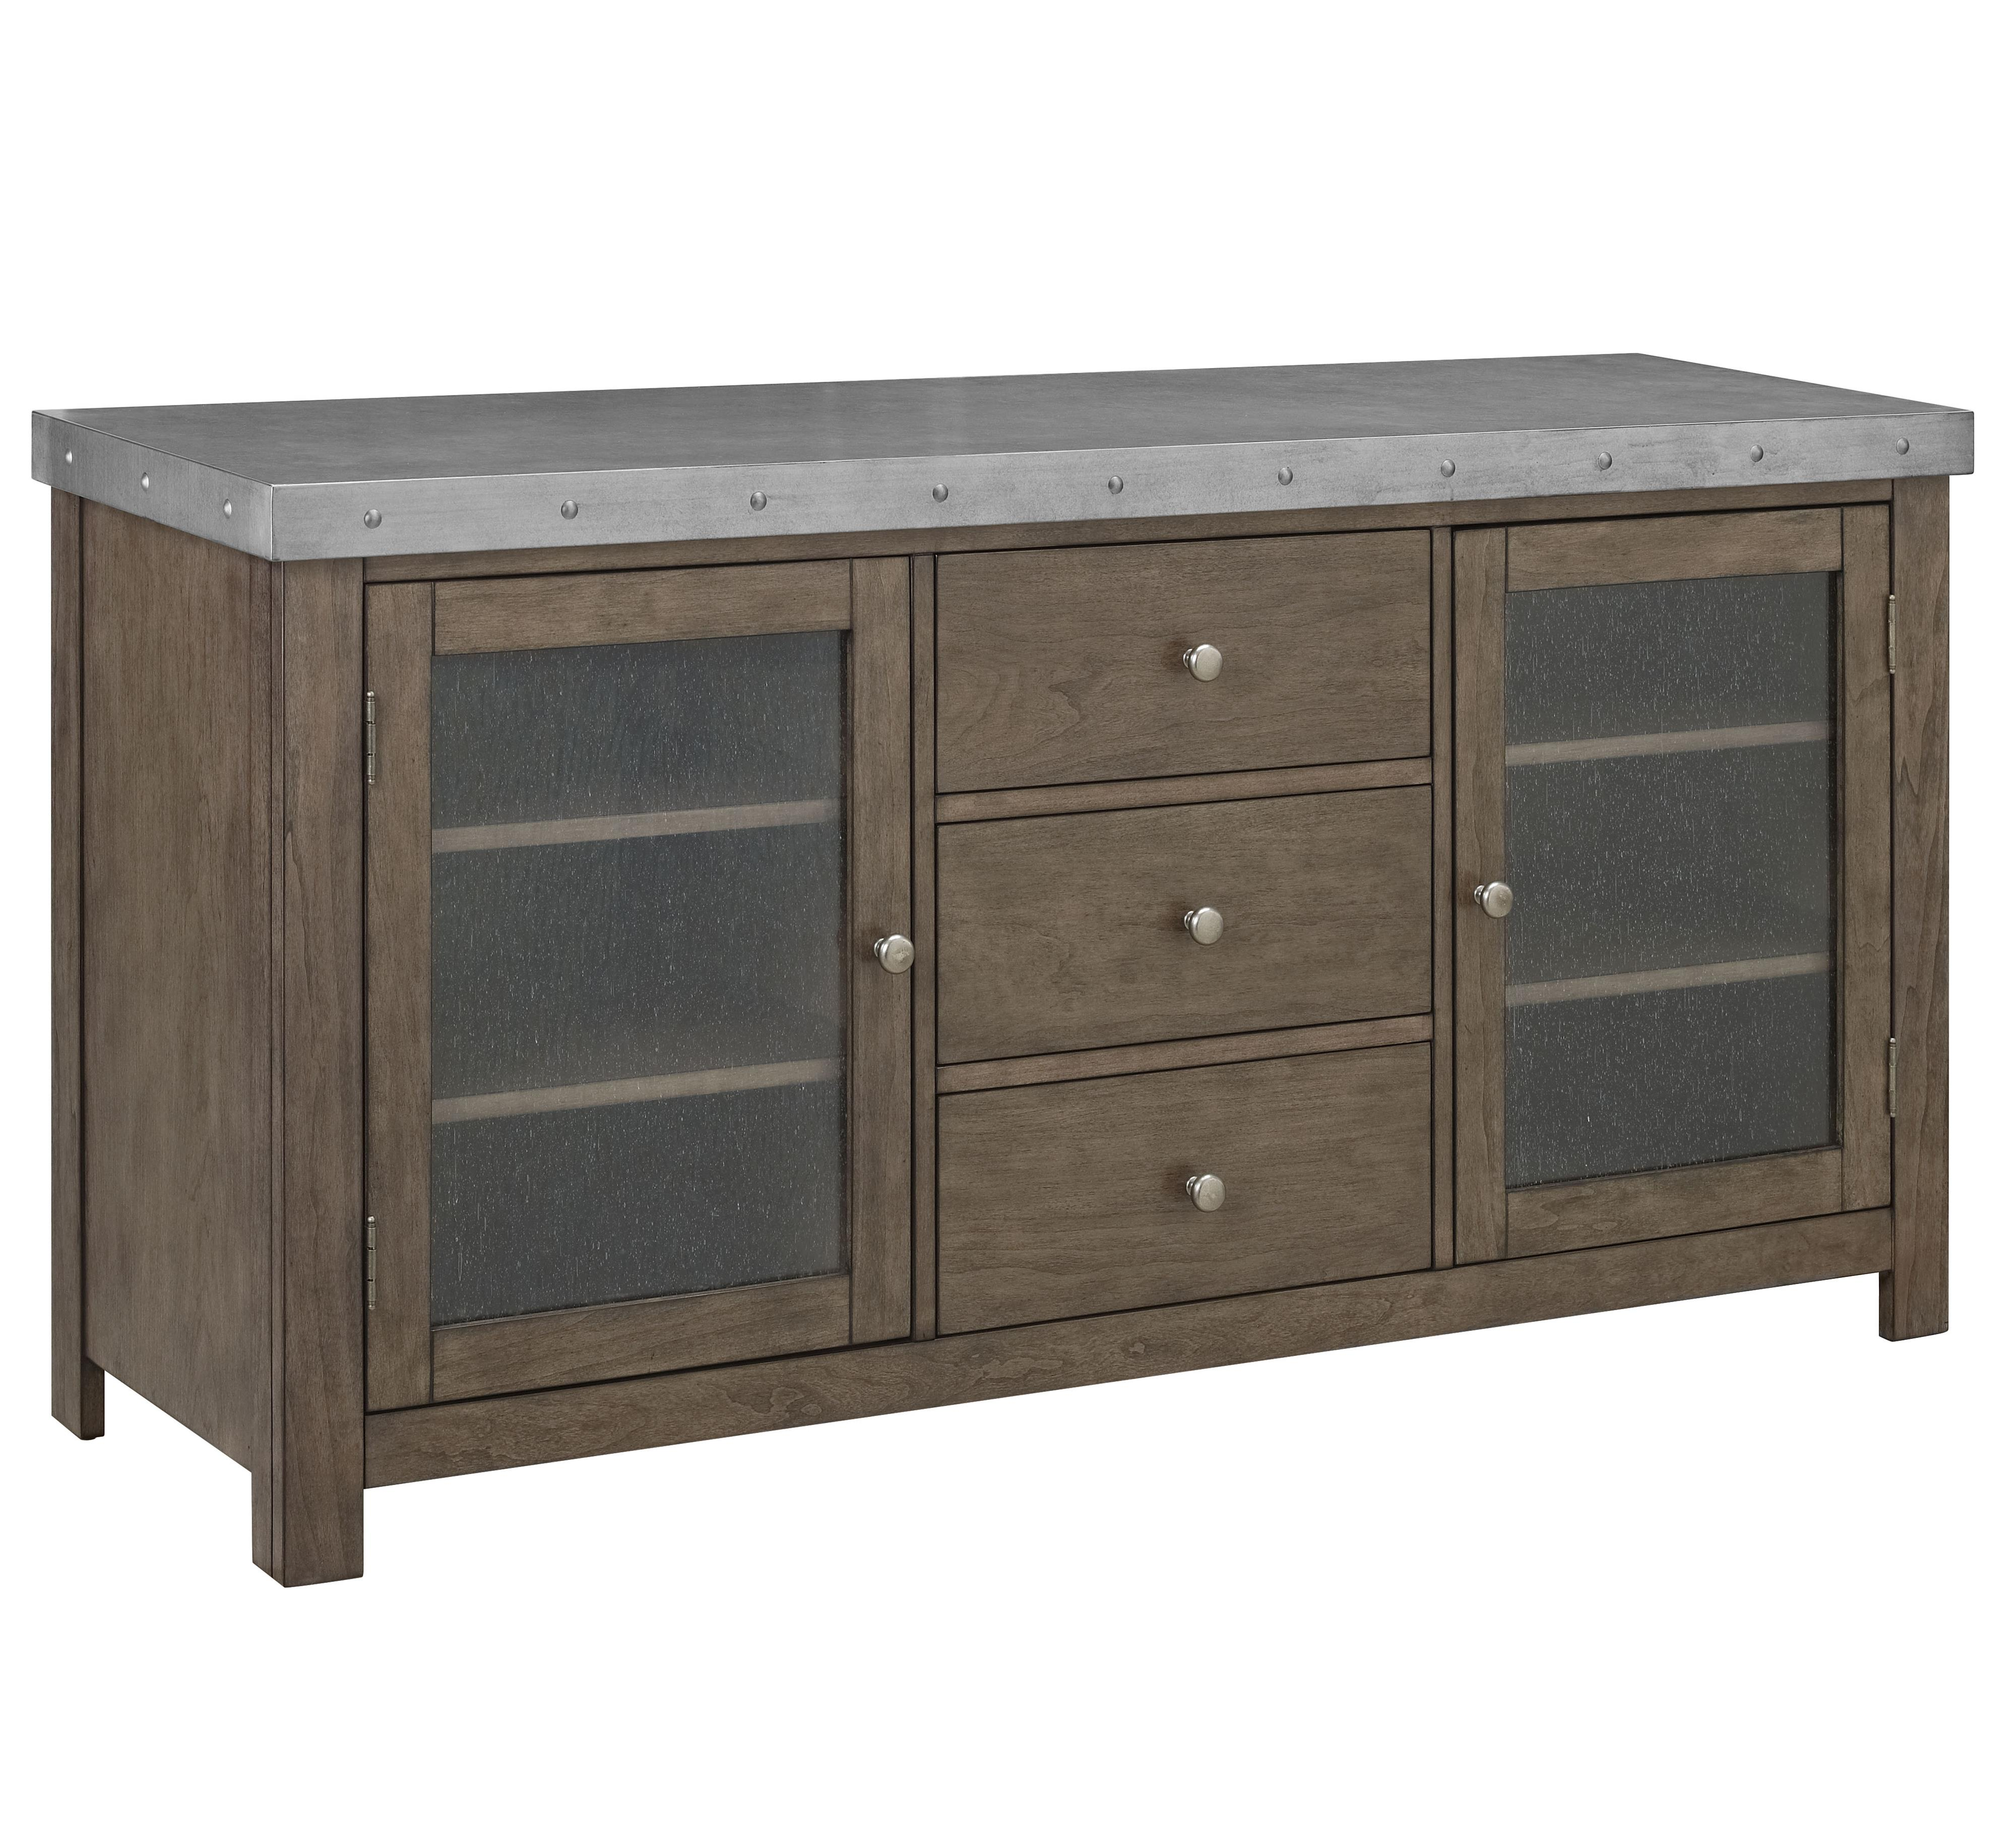 Standard Furniture Riverton Accent Tables Entertainment Console - Item Number: 28588